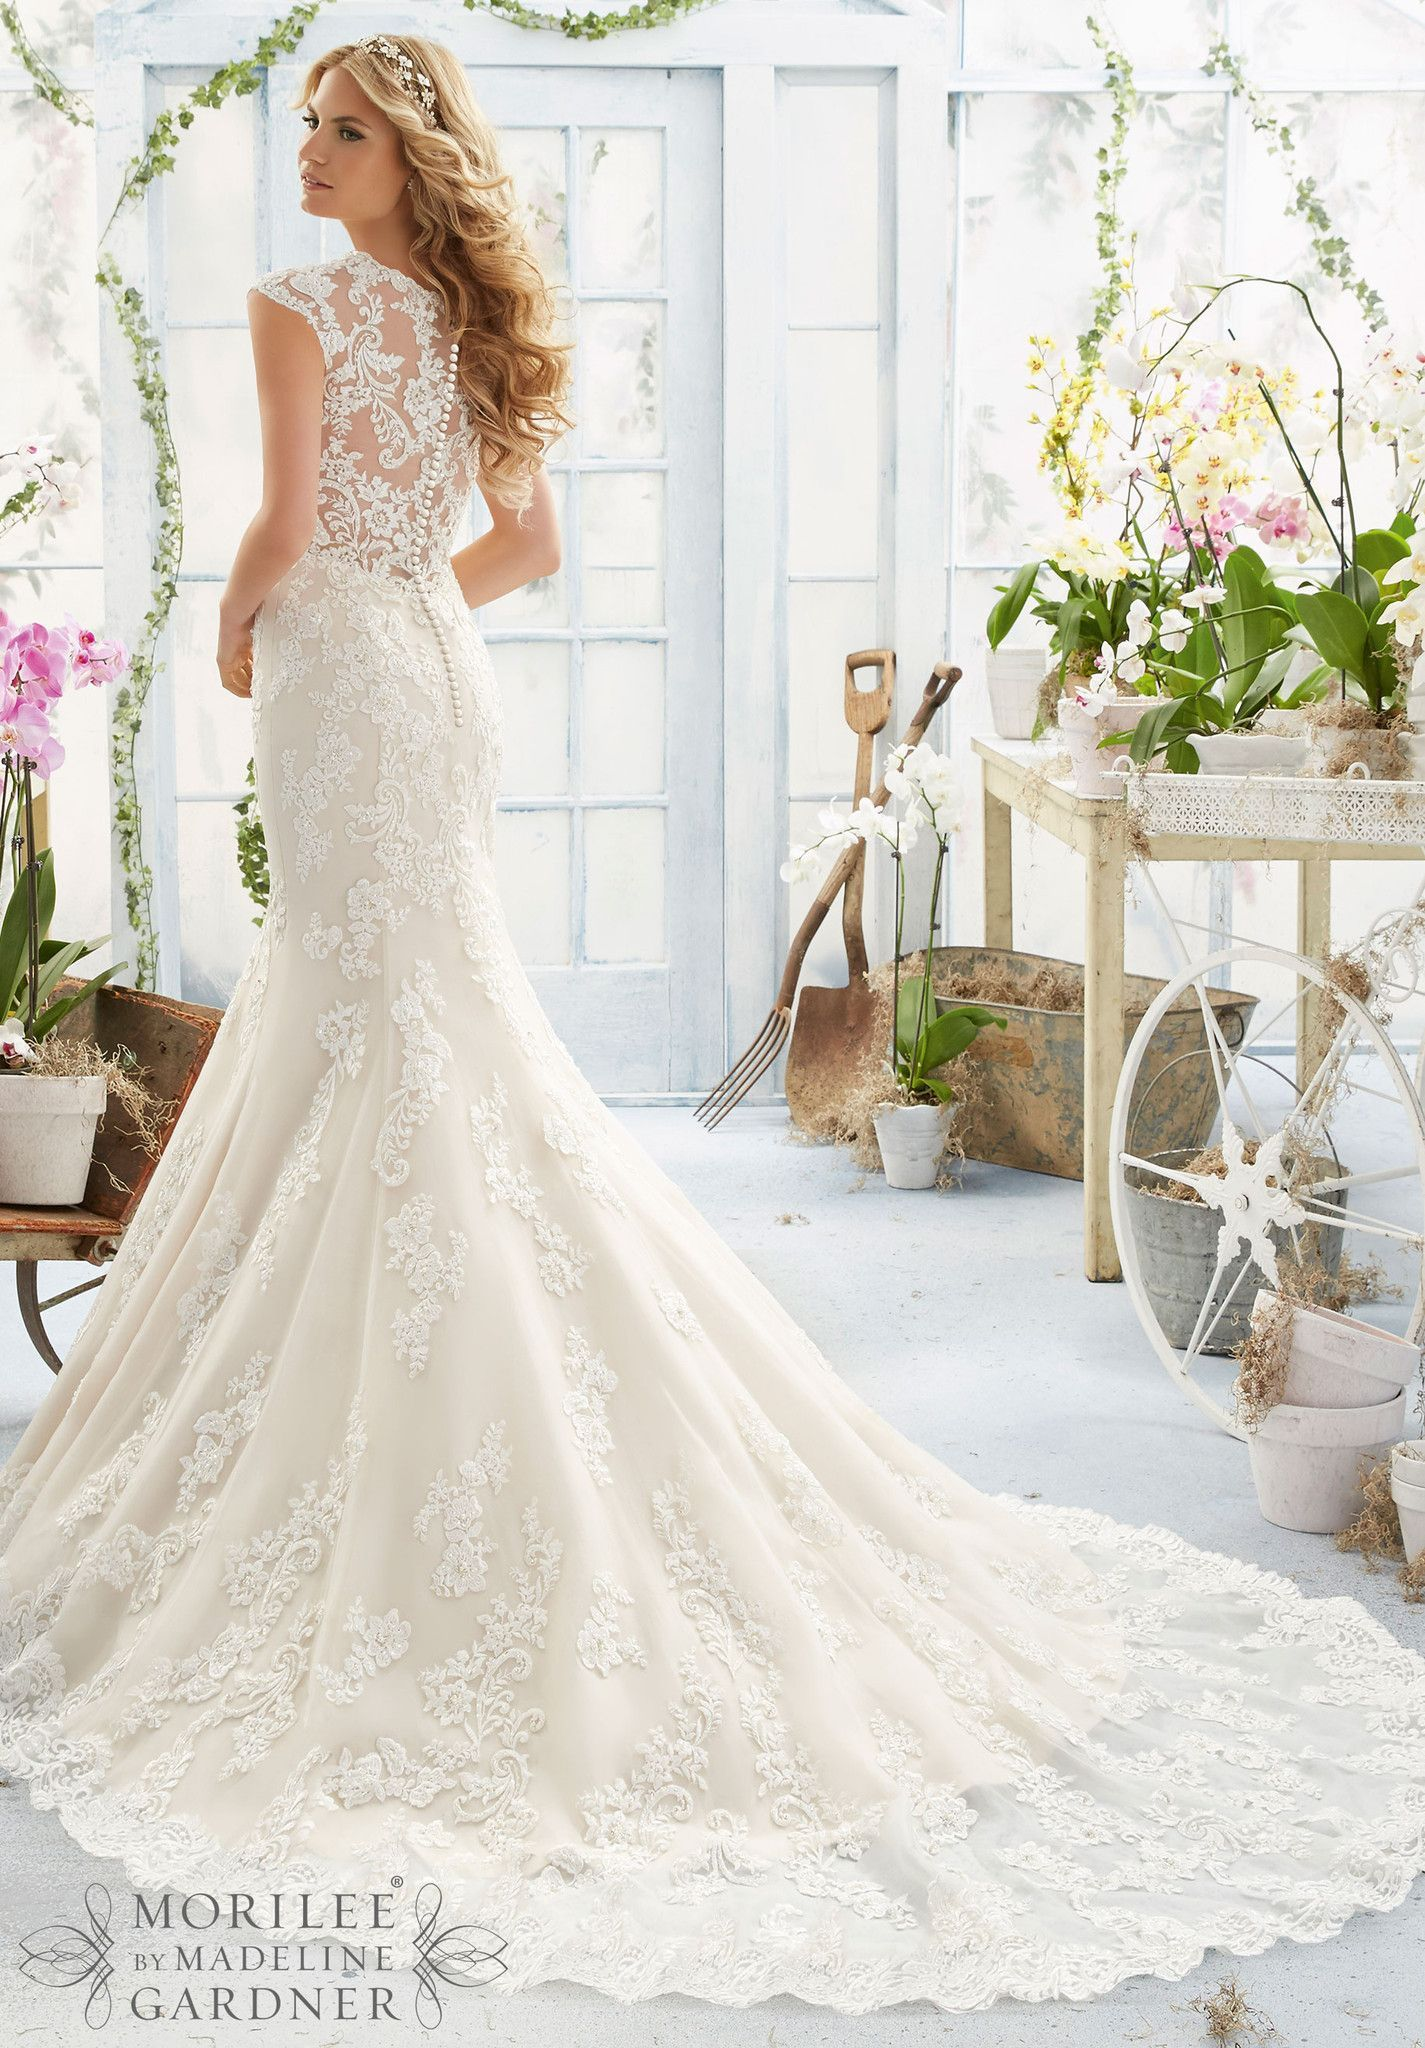 Mori Lee - 2806 - All Dressed Up, Bridal Gown